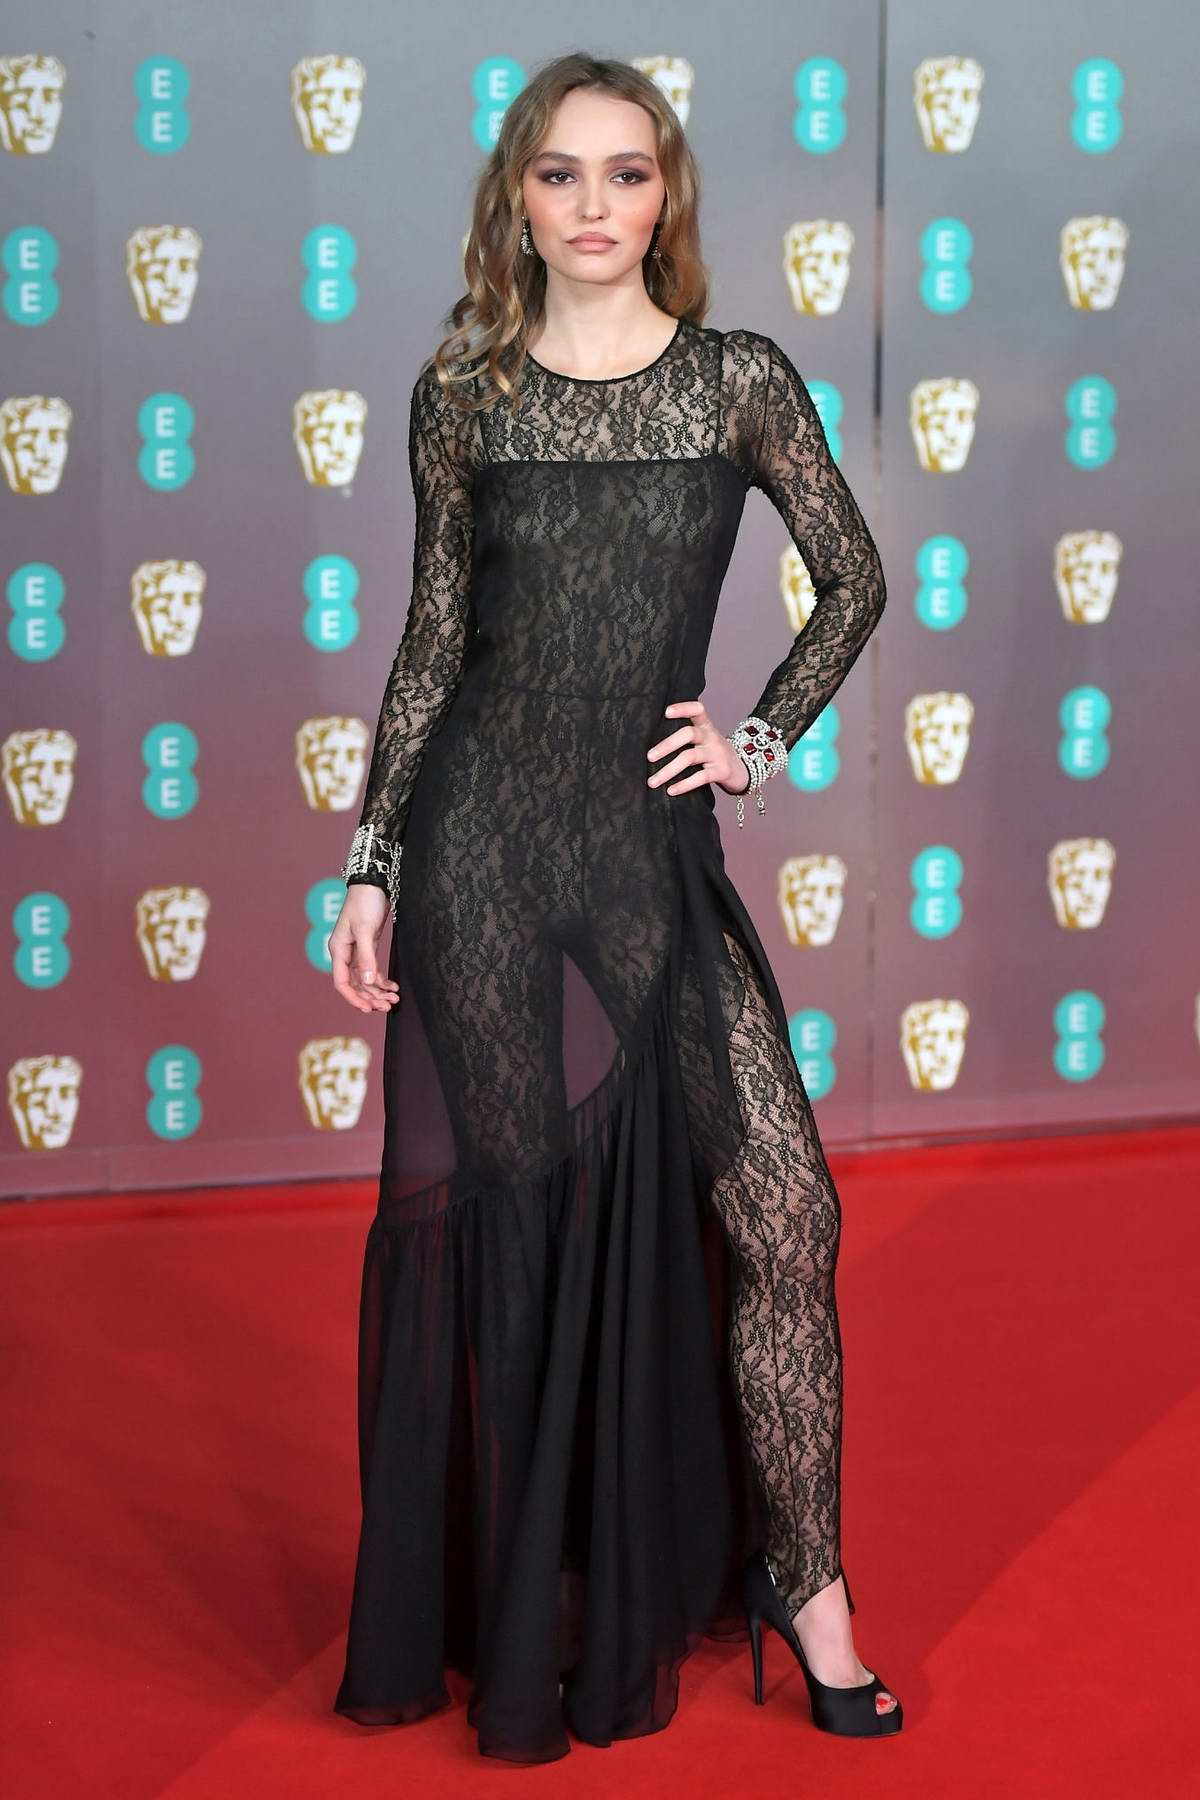 Lily-Rose Depp attends the 73rd EE British Academy Film Awards at Royal Albert Hall in London, UK